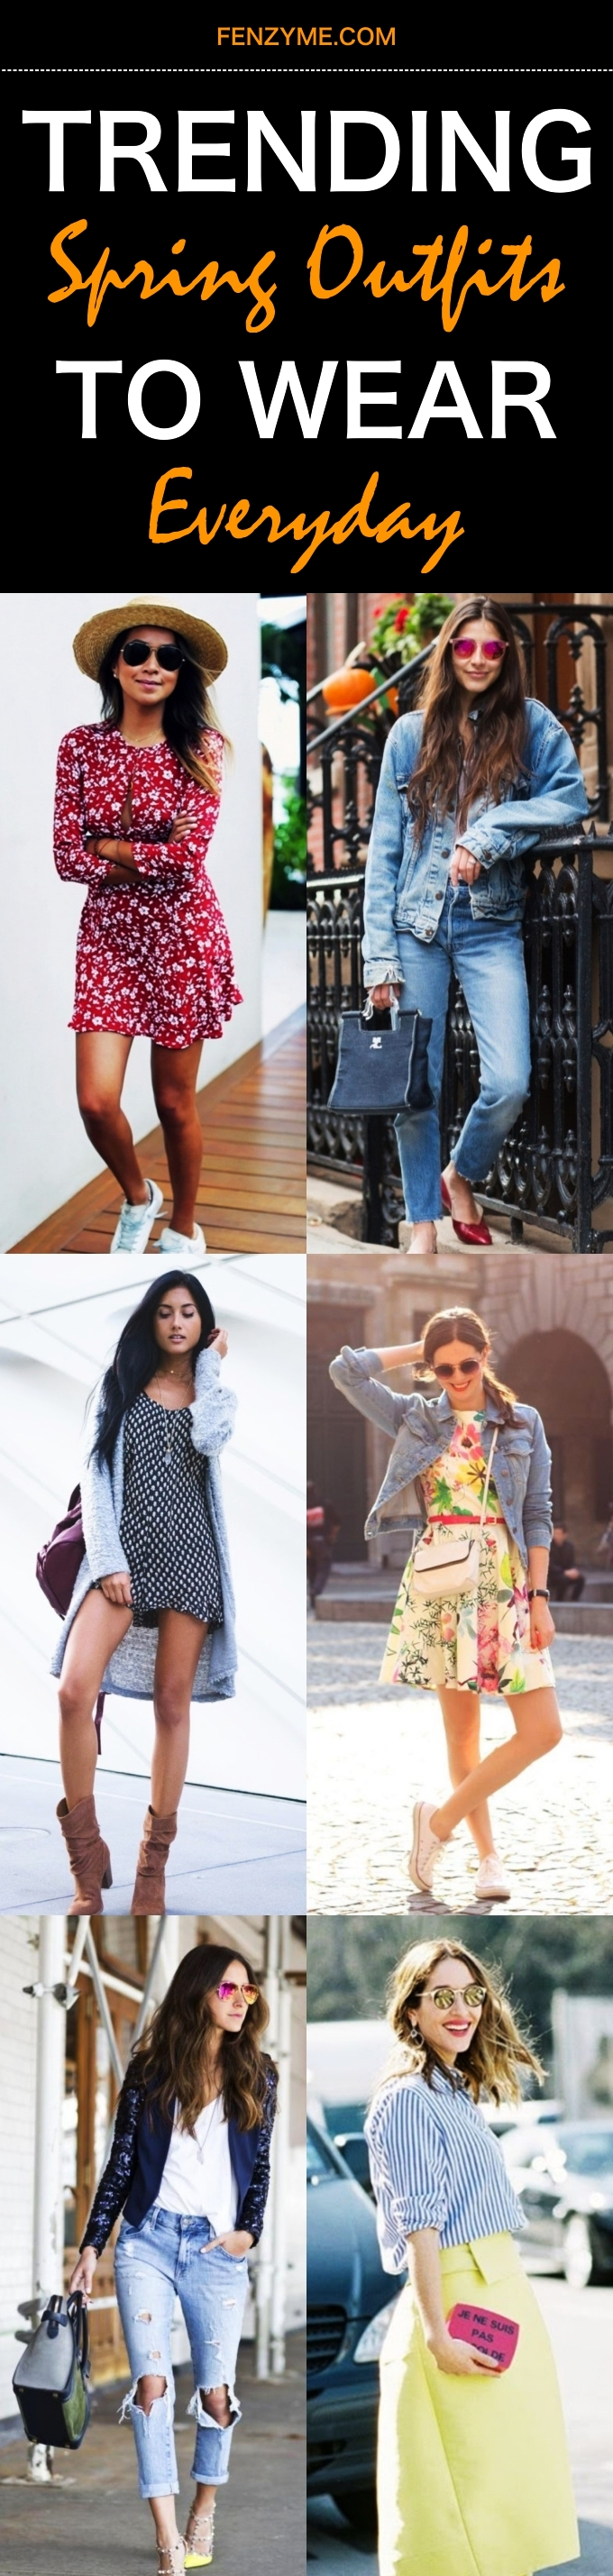 Trending Spring Outfits to wear Everyday